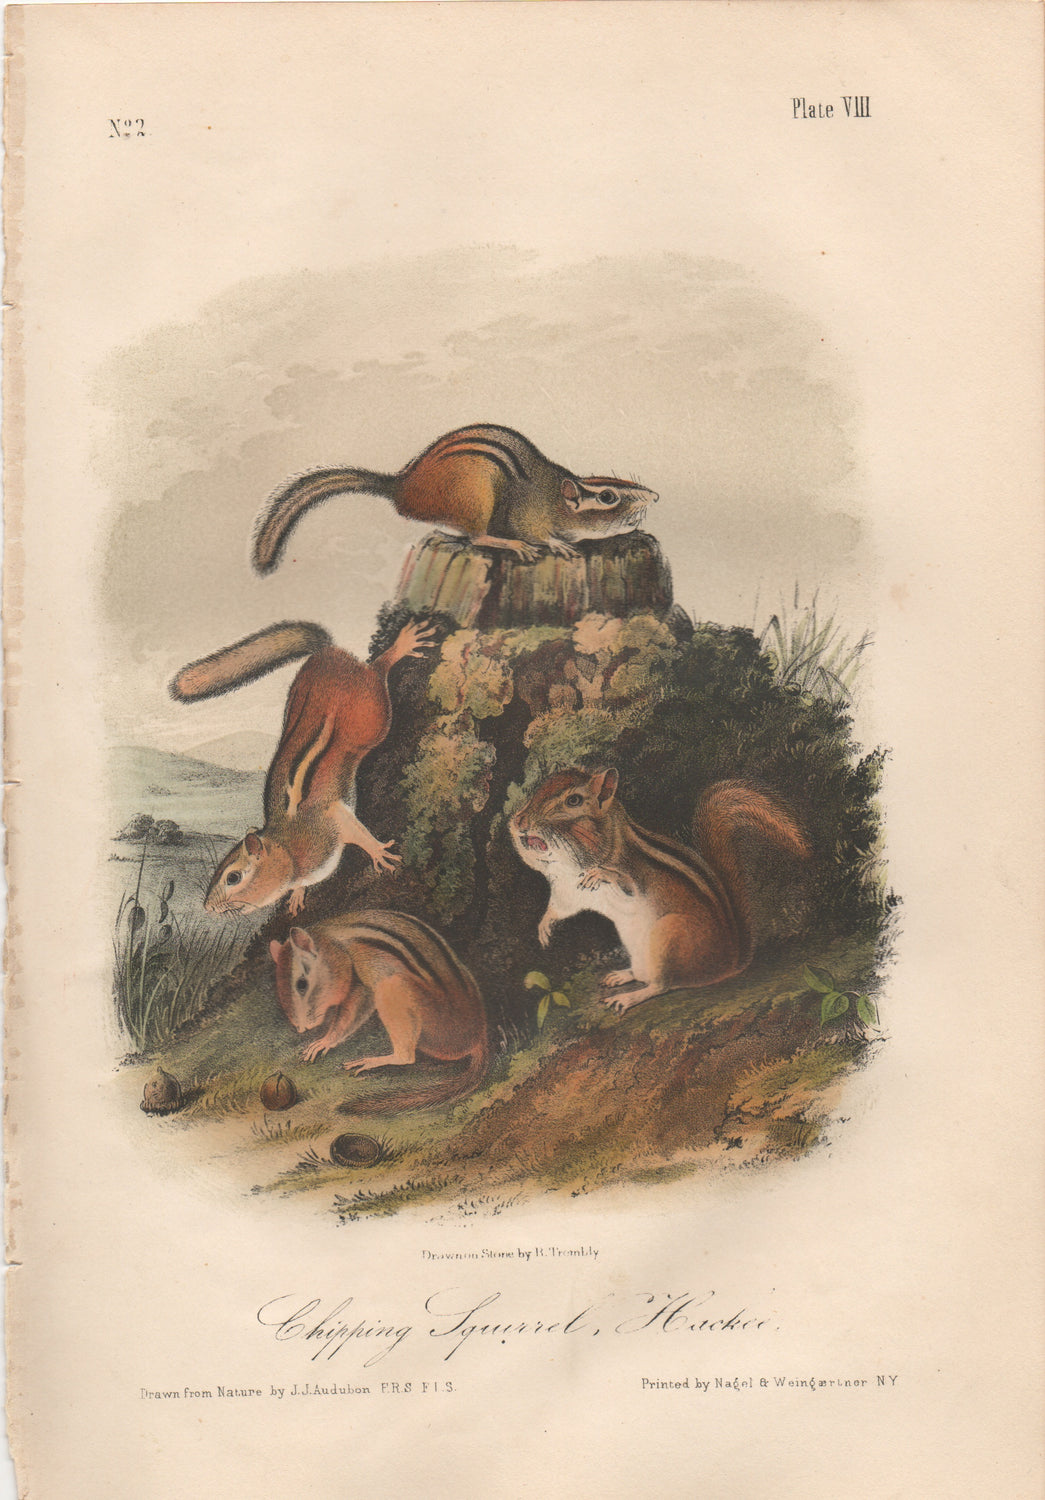 Audubon Original Octavo Mammal, Chipping Squirrel, plate 8